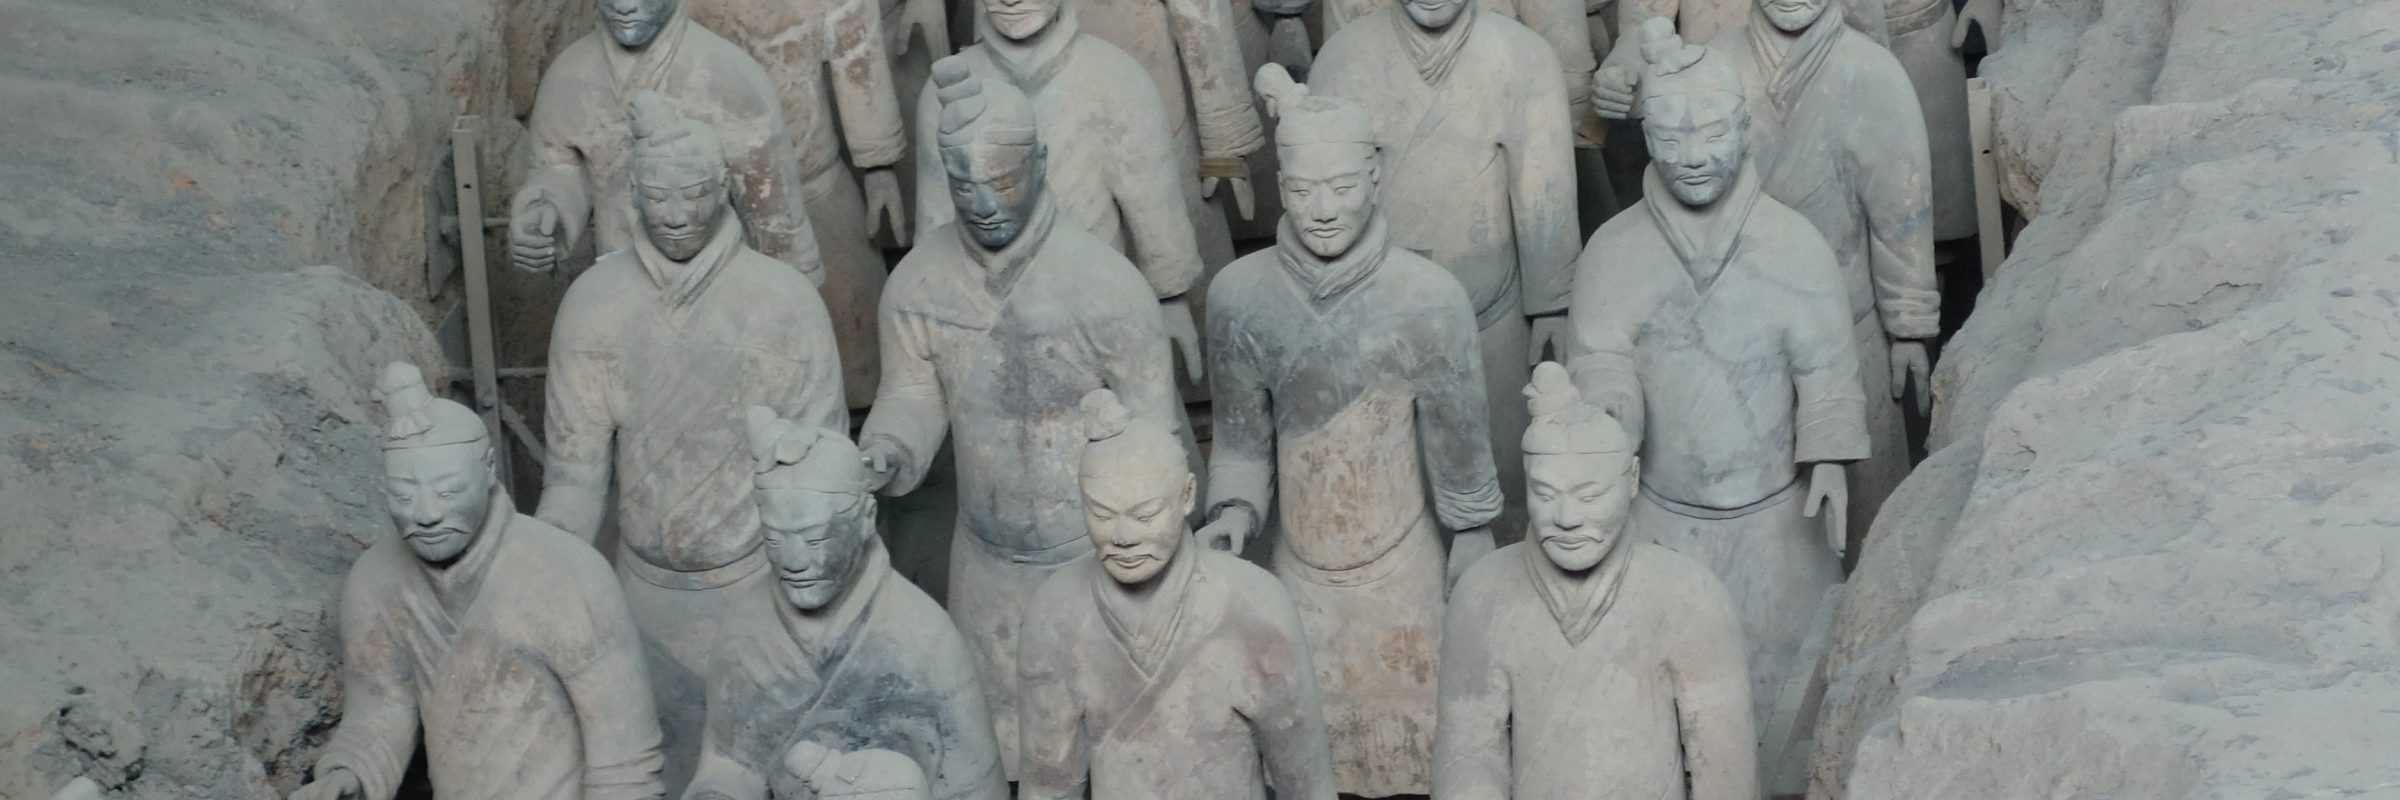 Terracotta Warriors, Xian, Chengdu